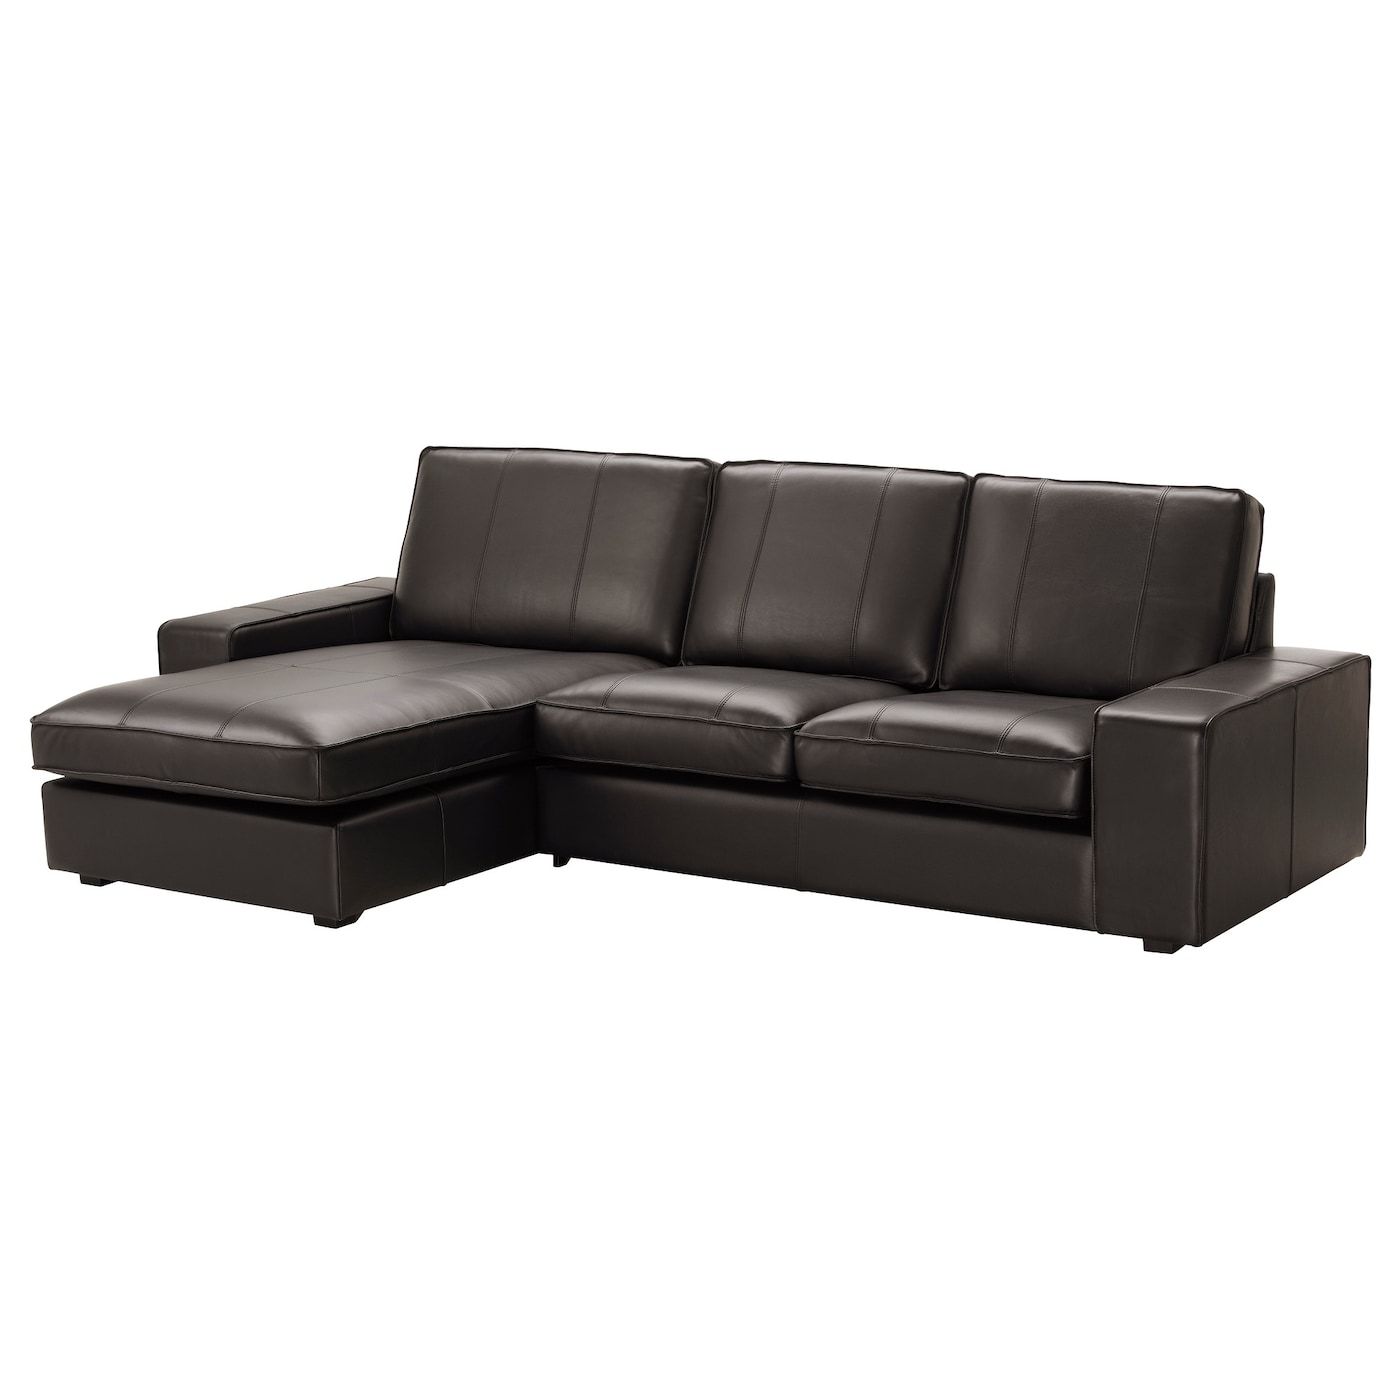 Leather coated fabric sofas ikea for Black leather chaise sofa